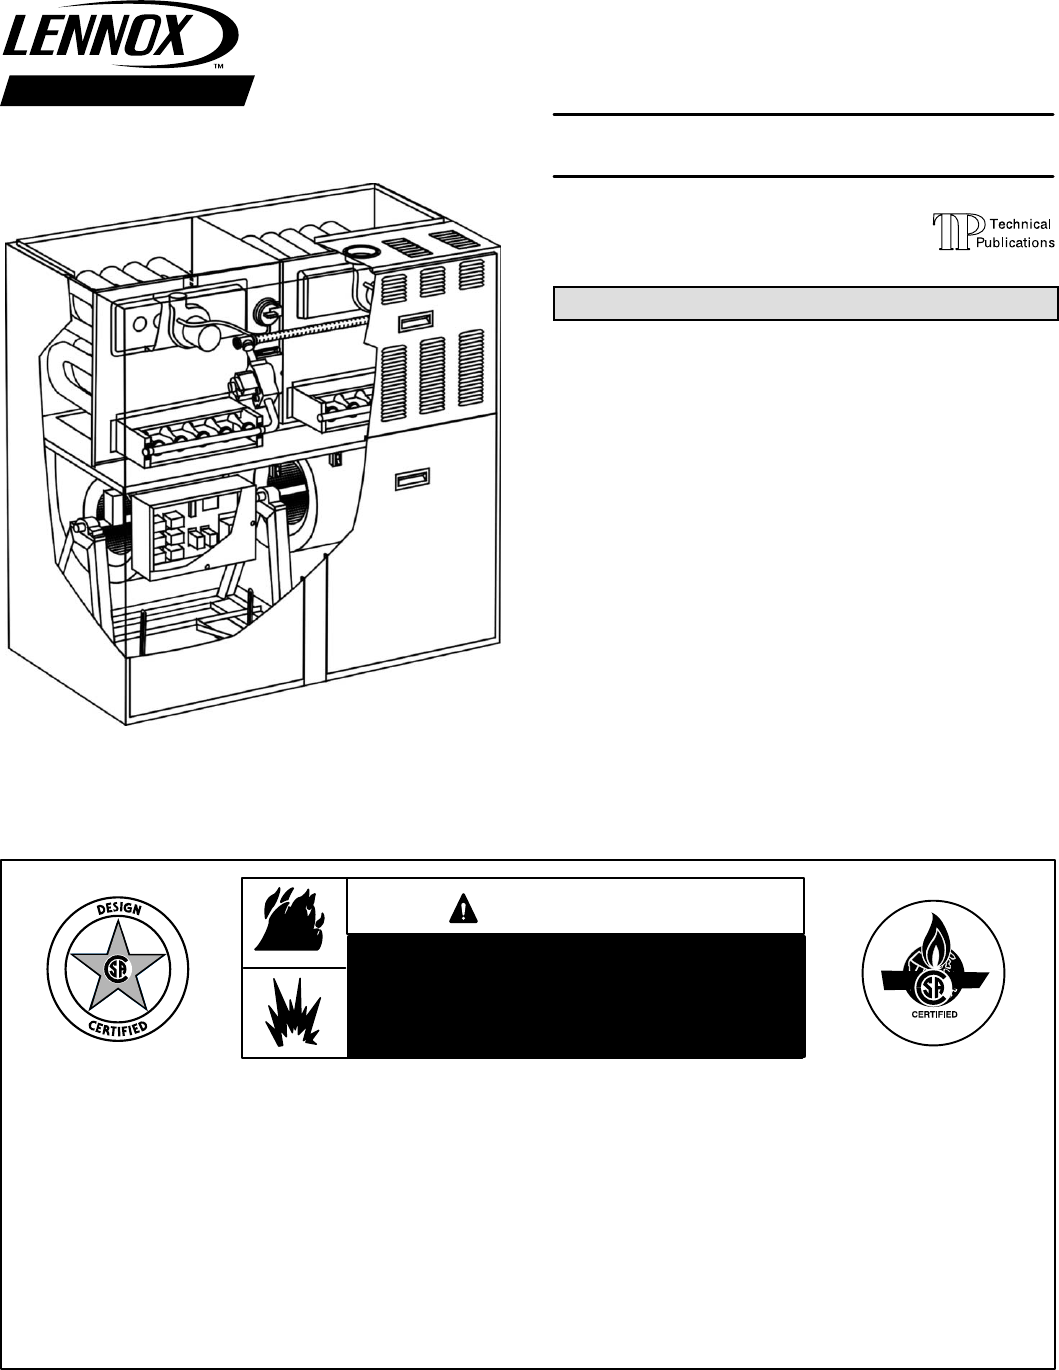 lennox gas furnace installation manual